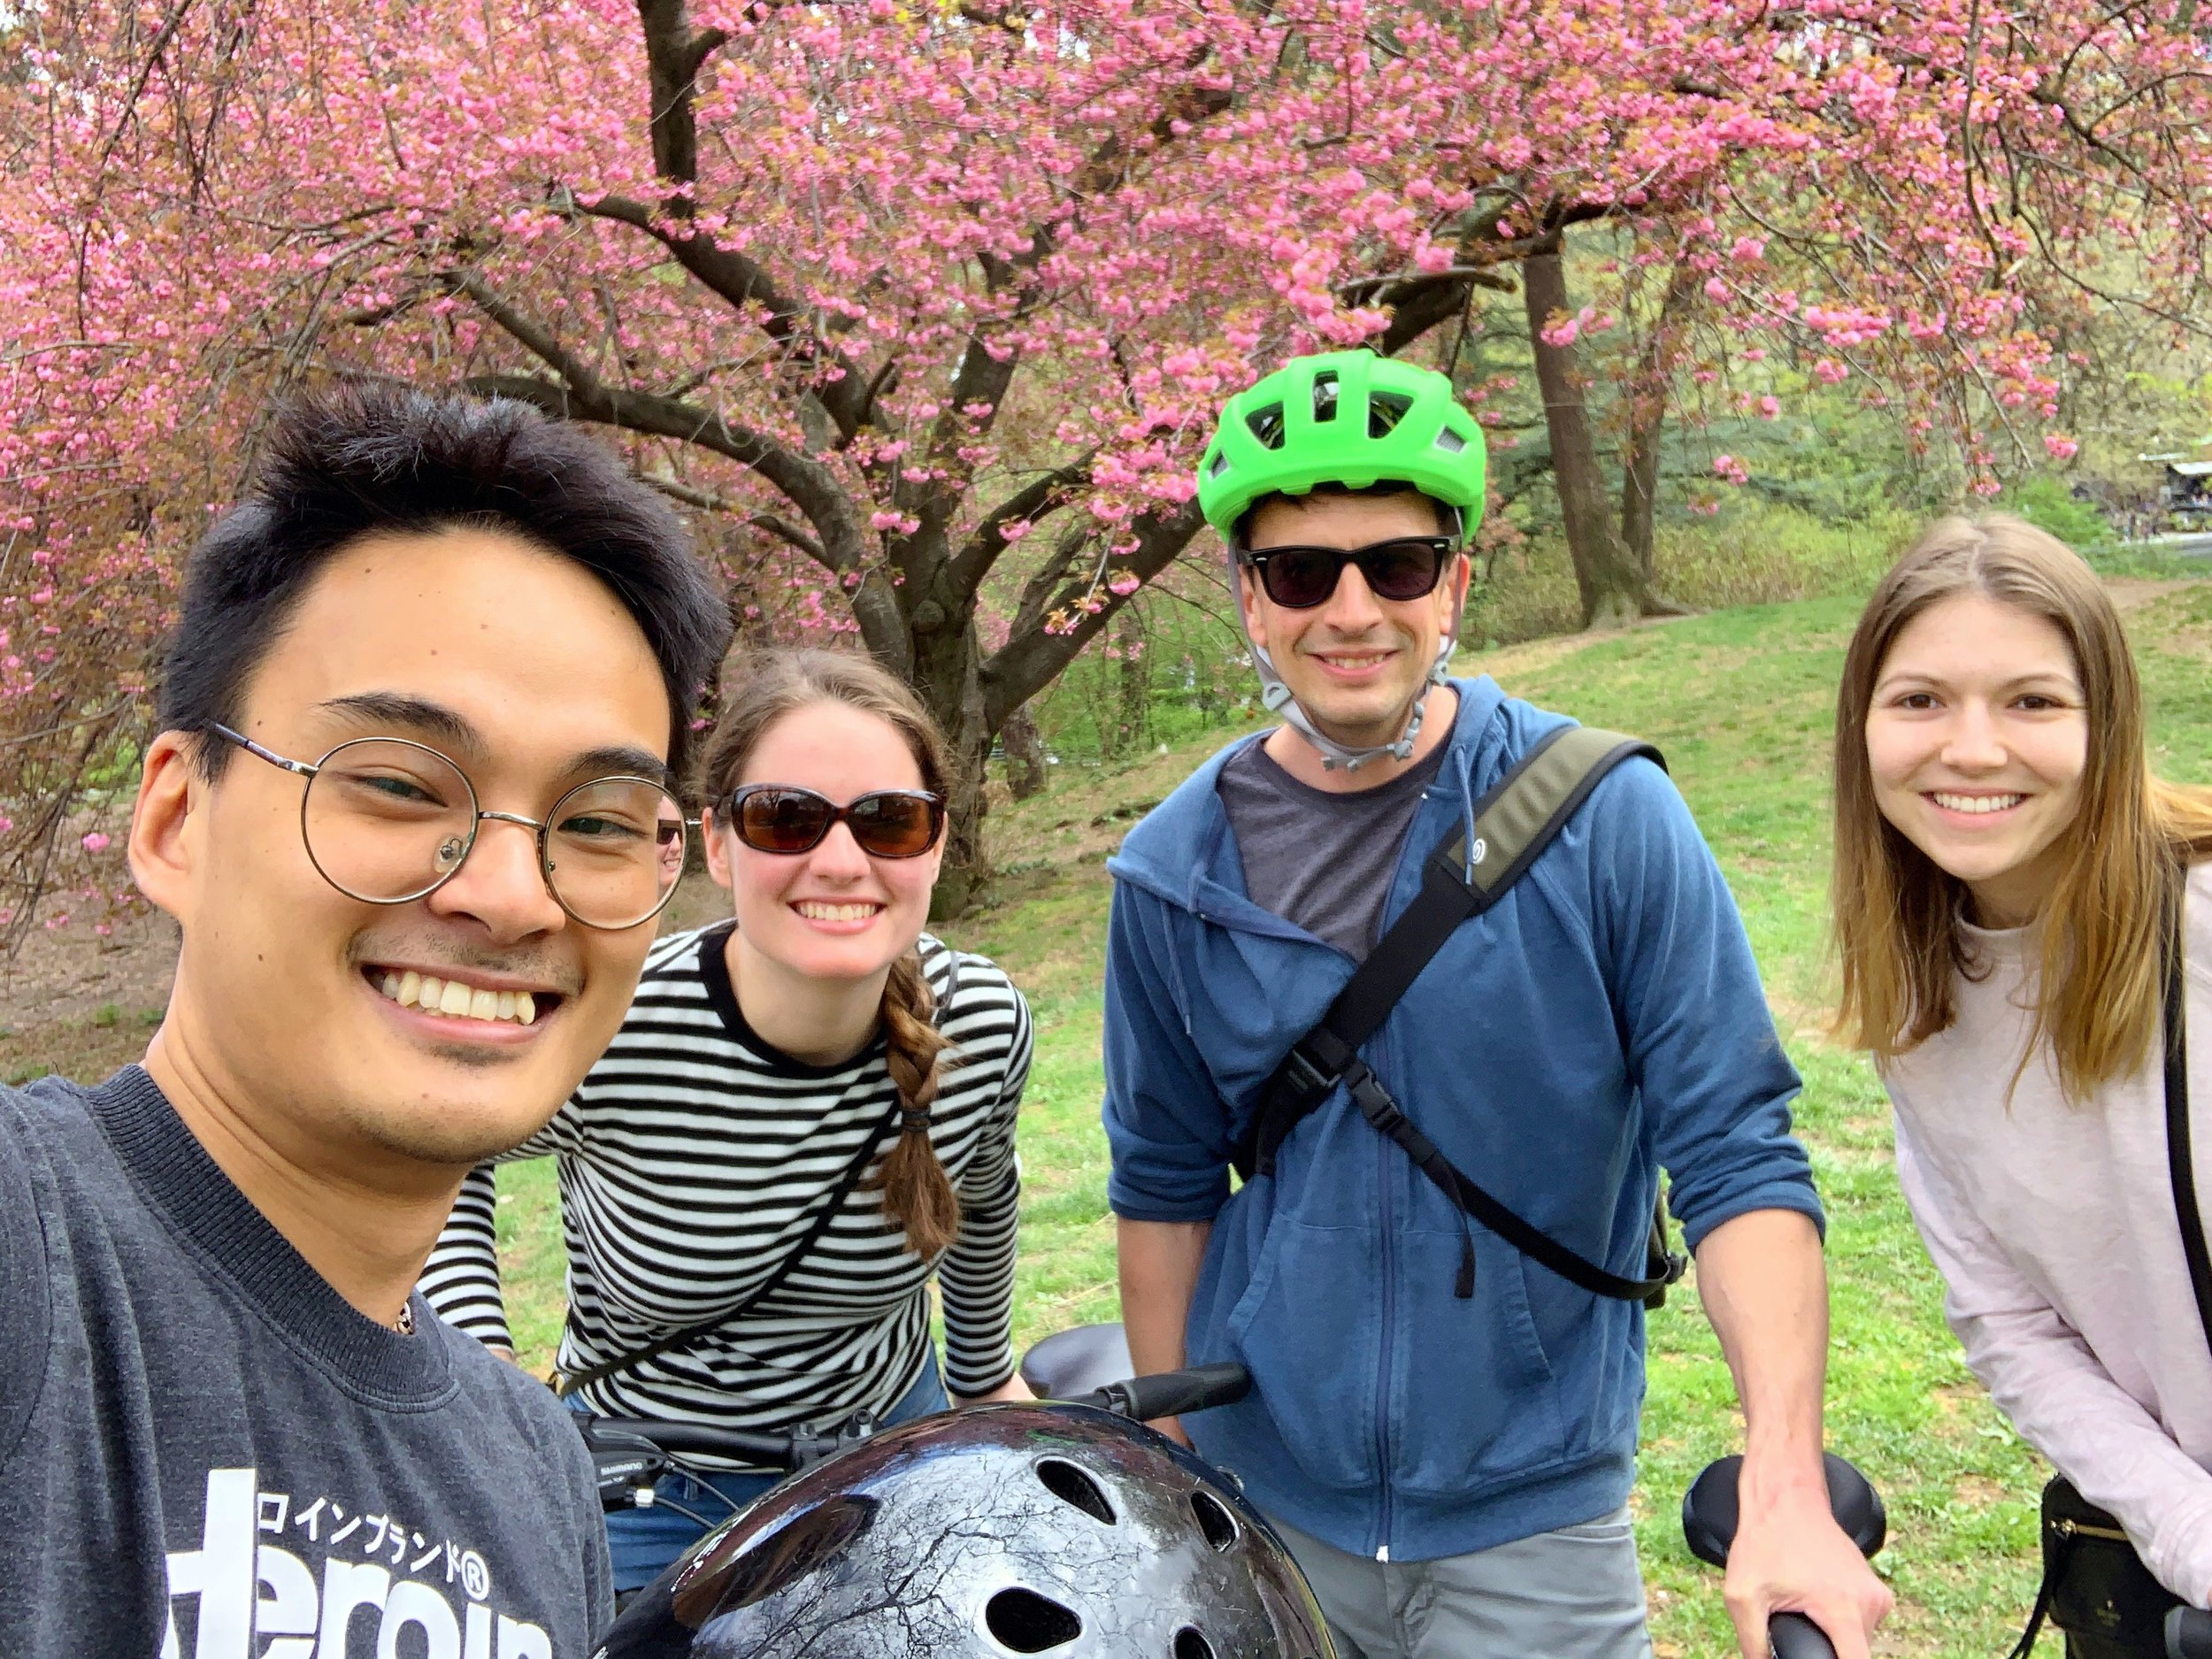 Biking in Central Park!